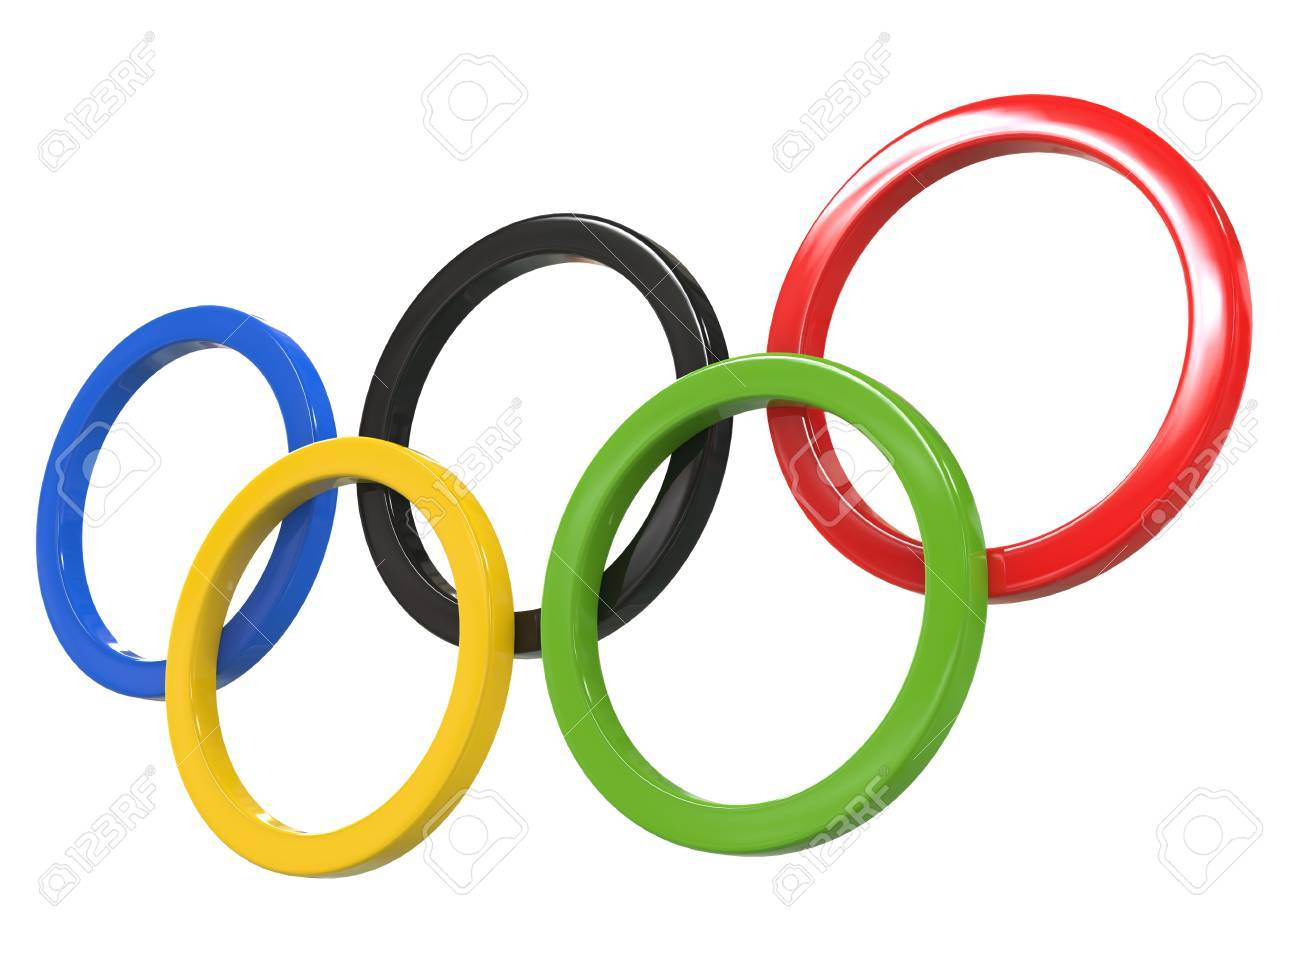 Olympic games rings side angle shot 3d illustration stock olympic games rings side angle shot 3d illustration stock photo 62235686 biocorpaavc Images